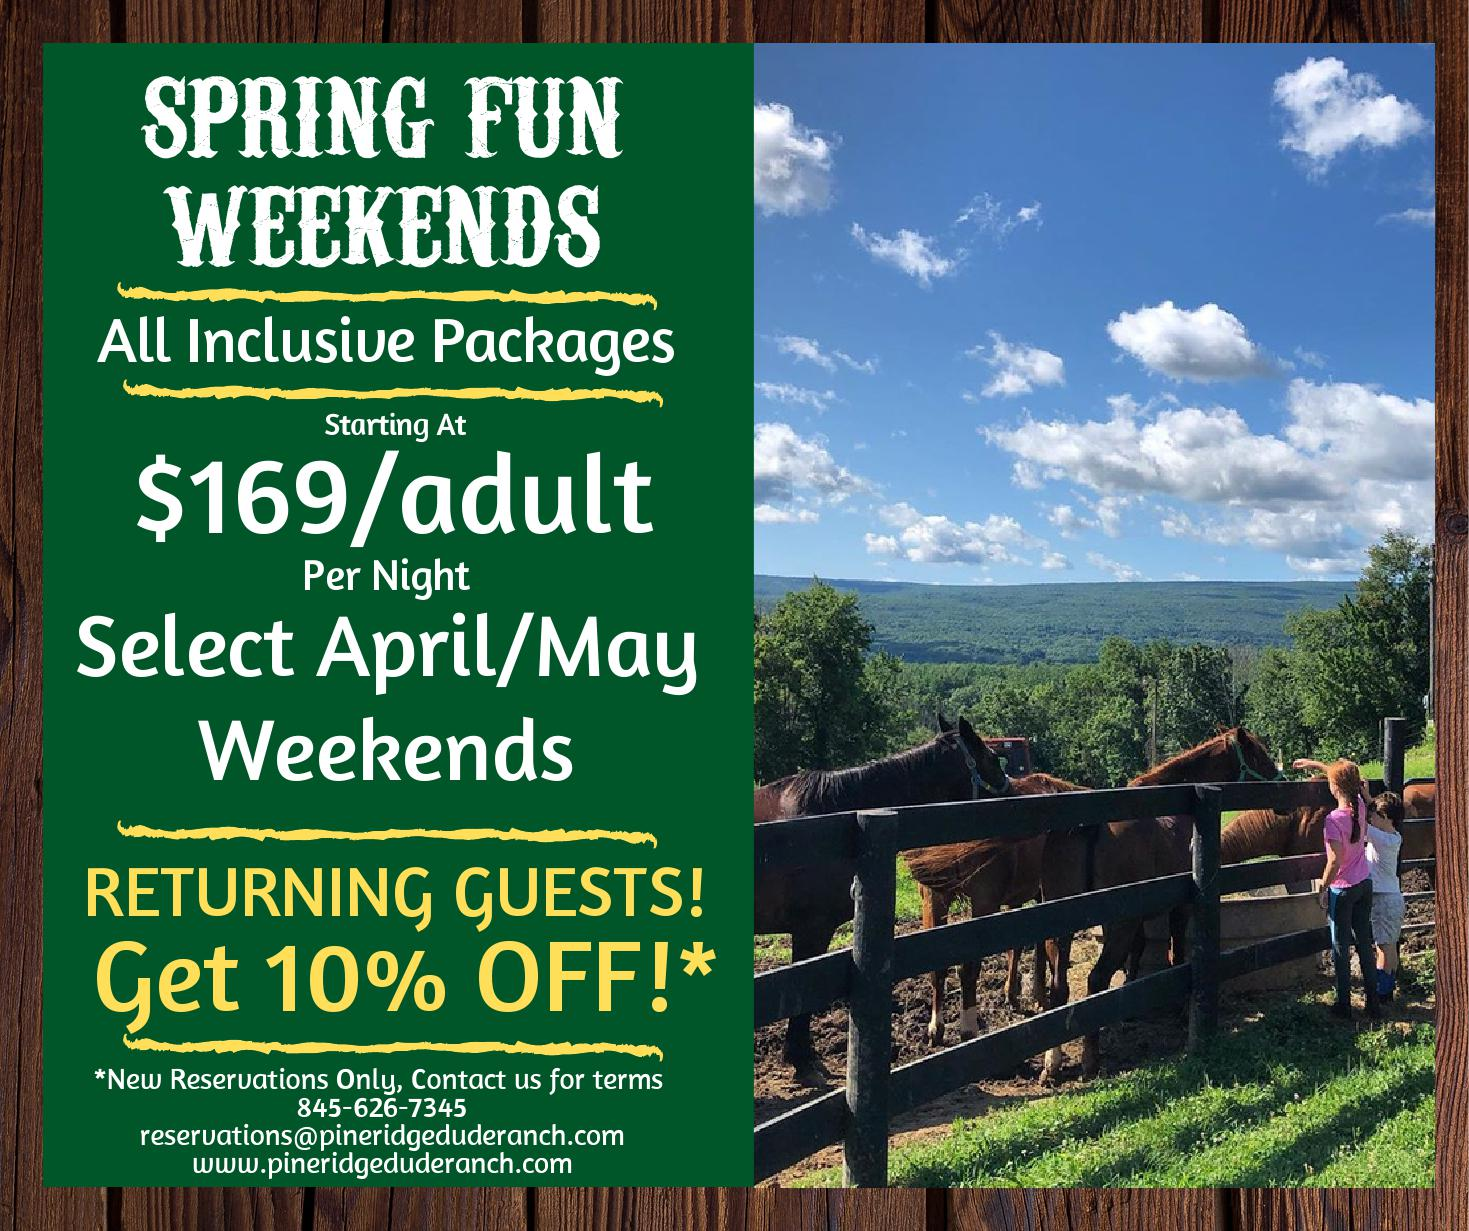 two school aged girls petting horses through a fence overlooking the mountain horizon, spring fun weekends all inclusive packages starting at 169 an adult per night select april may weekends plus returning guests get 10% off.